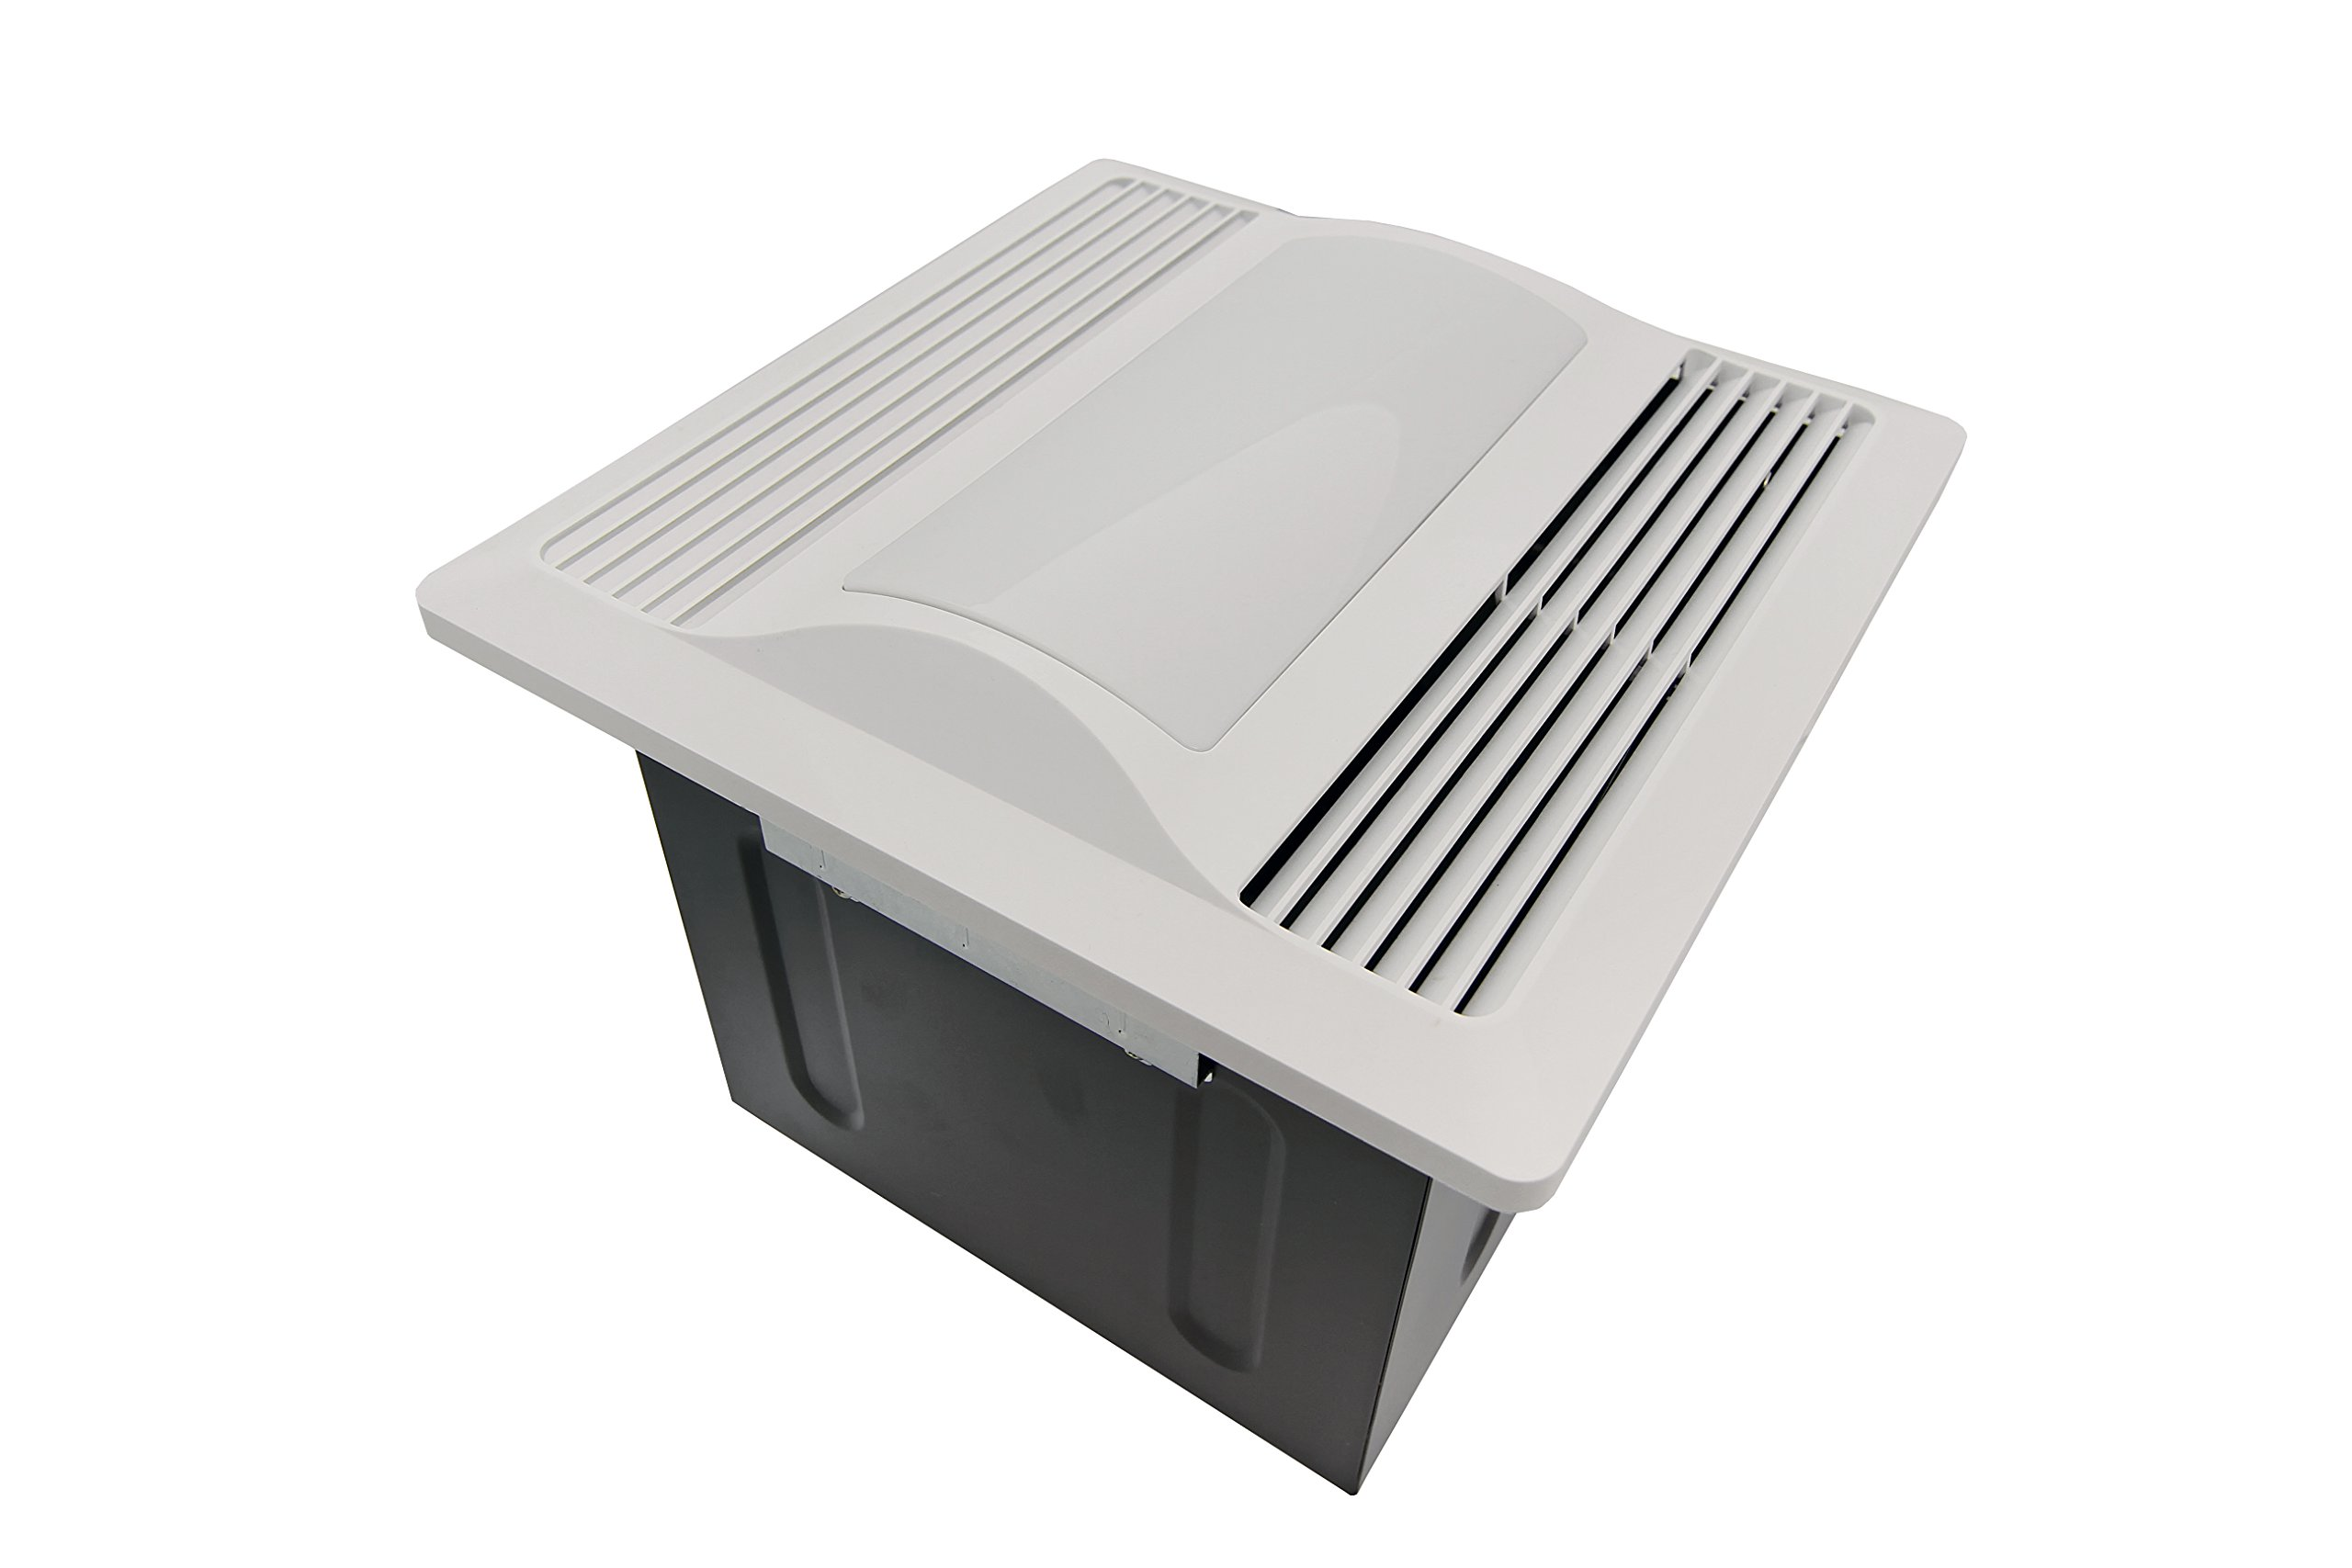 Aero Pure SBF 110 L1 W 110-CFM Super Quiet Bathroom Ventilation Fan with Light/nightlight Energy Star Qualified, White